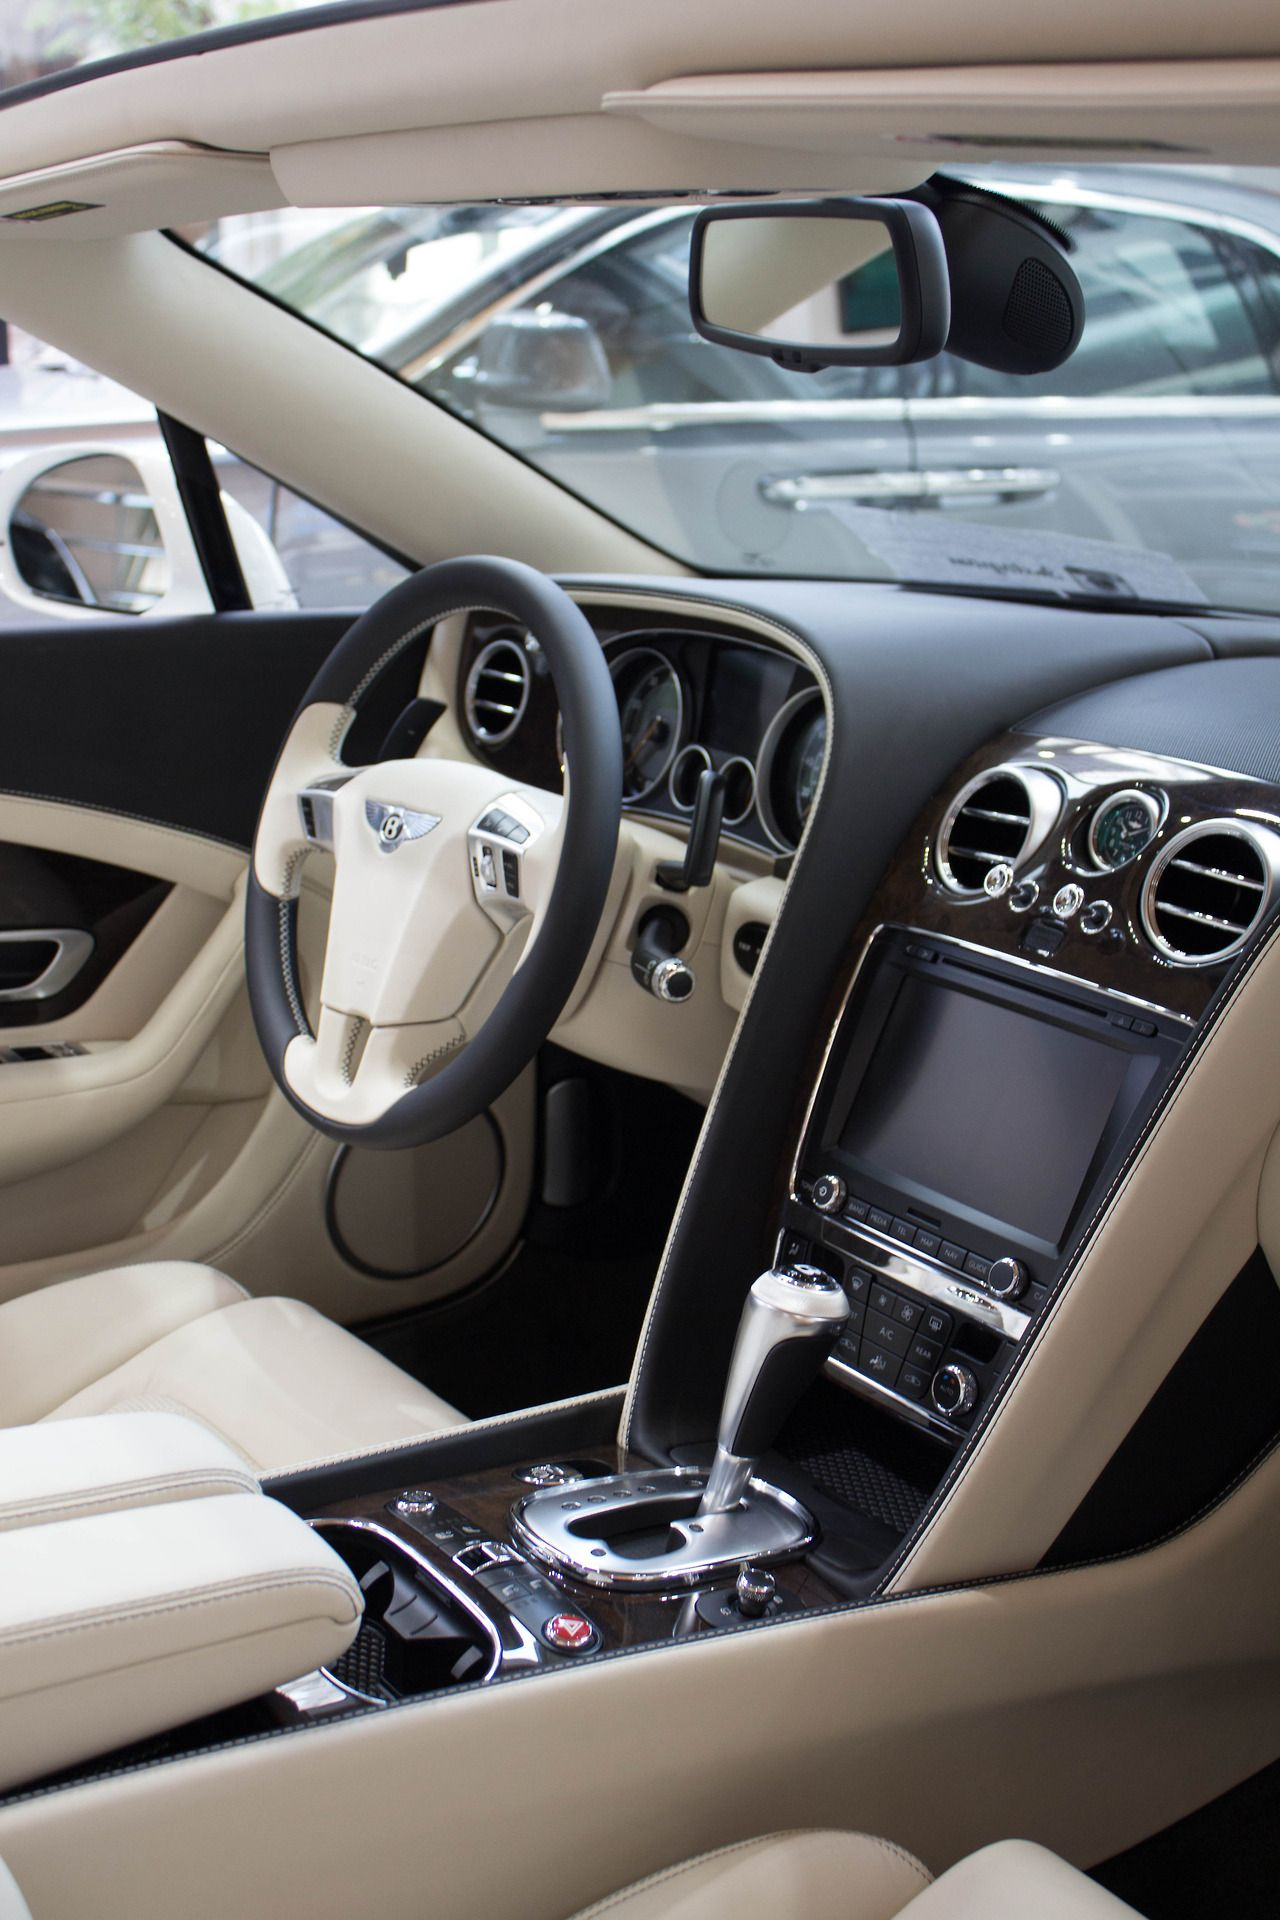 bentley car interior images images galleries with a bite. Black Bedroom Furniture Sets. Home Design Ideas